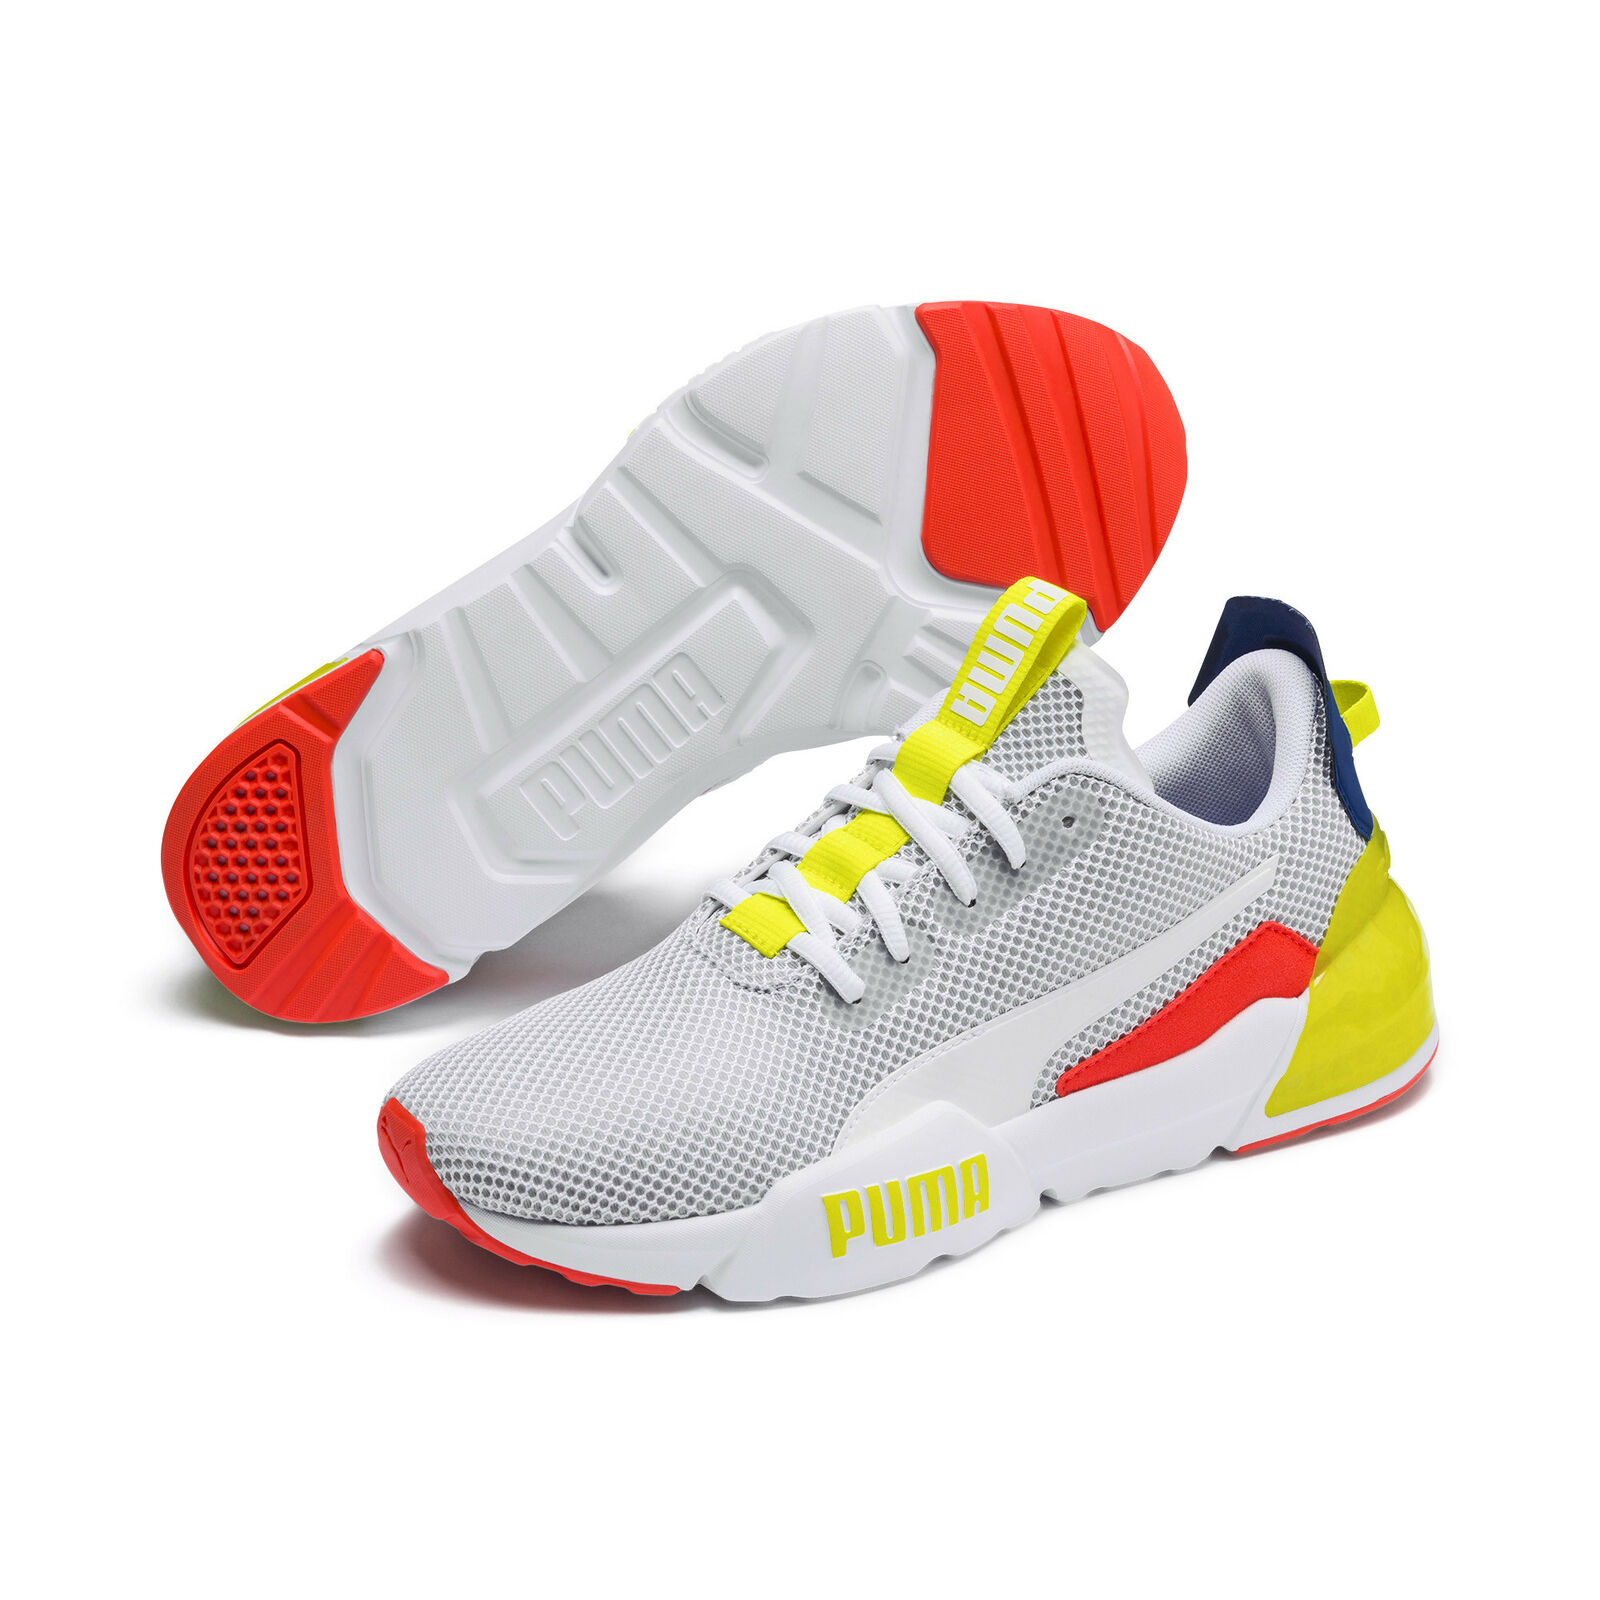 Puma CELL Phase Men's Trainers   Reg Price: $80   Today's Price: $40 (50% off!)    via eBay